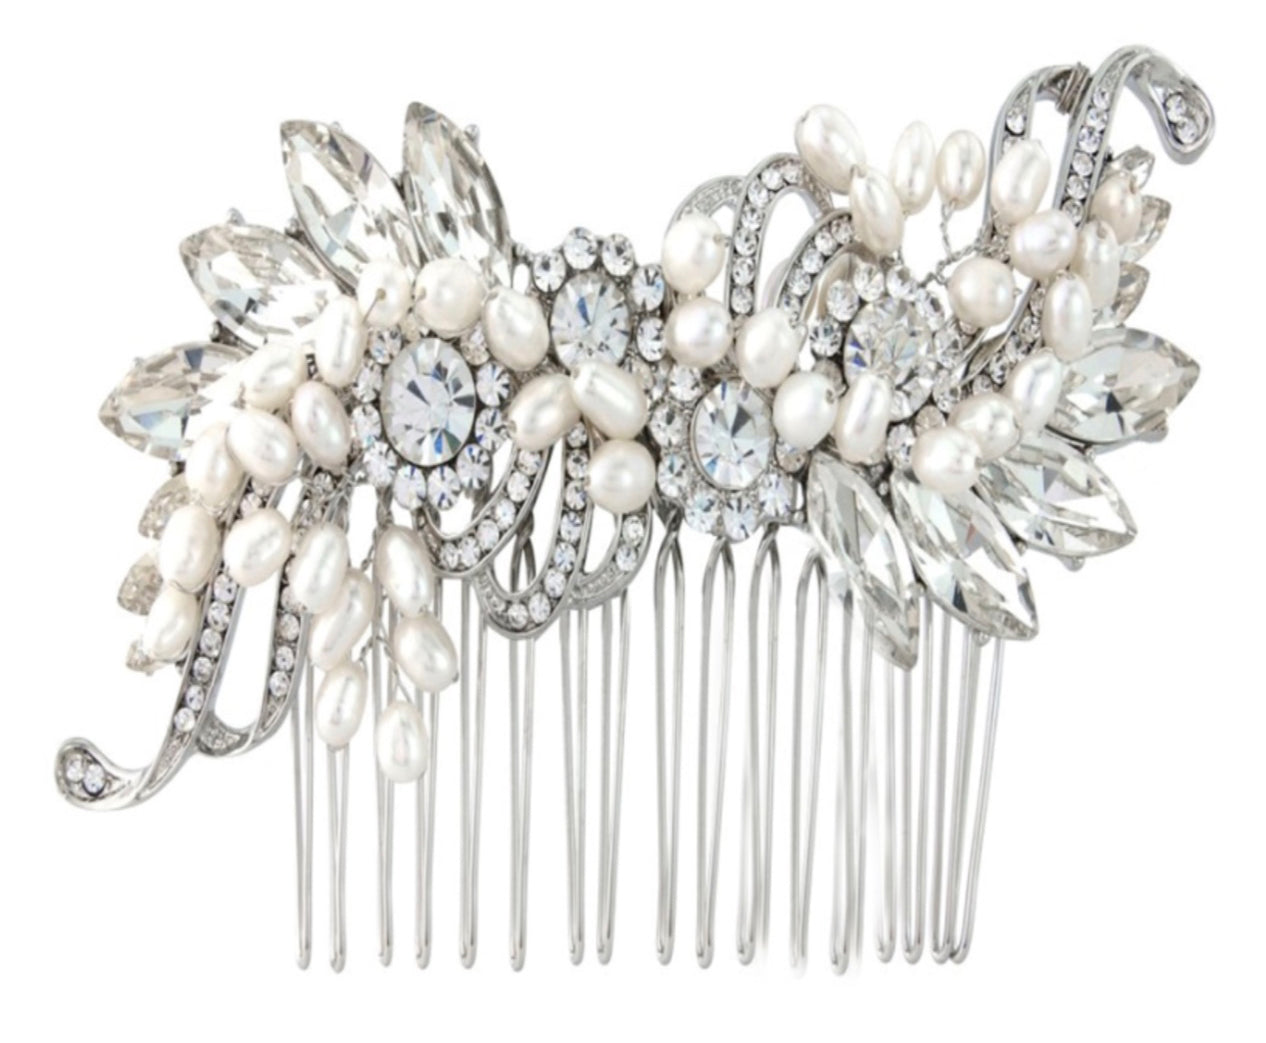 Hair comb - beautiful ivory pearls crystals and diamanté's